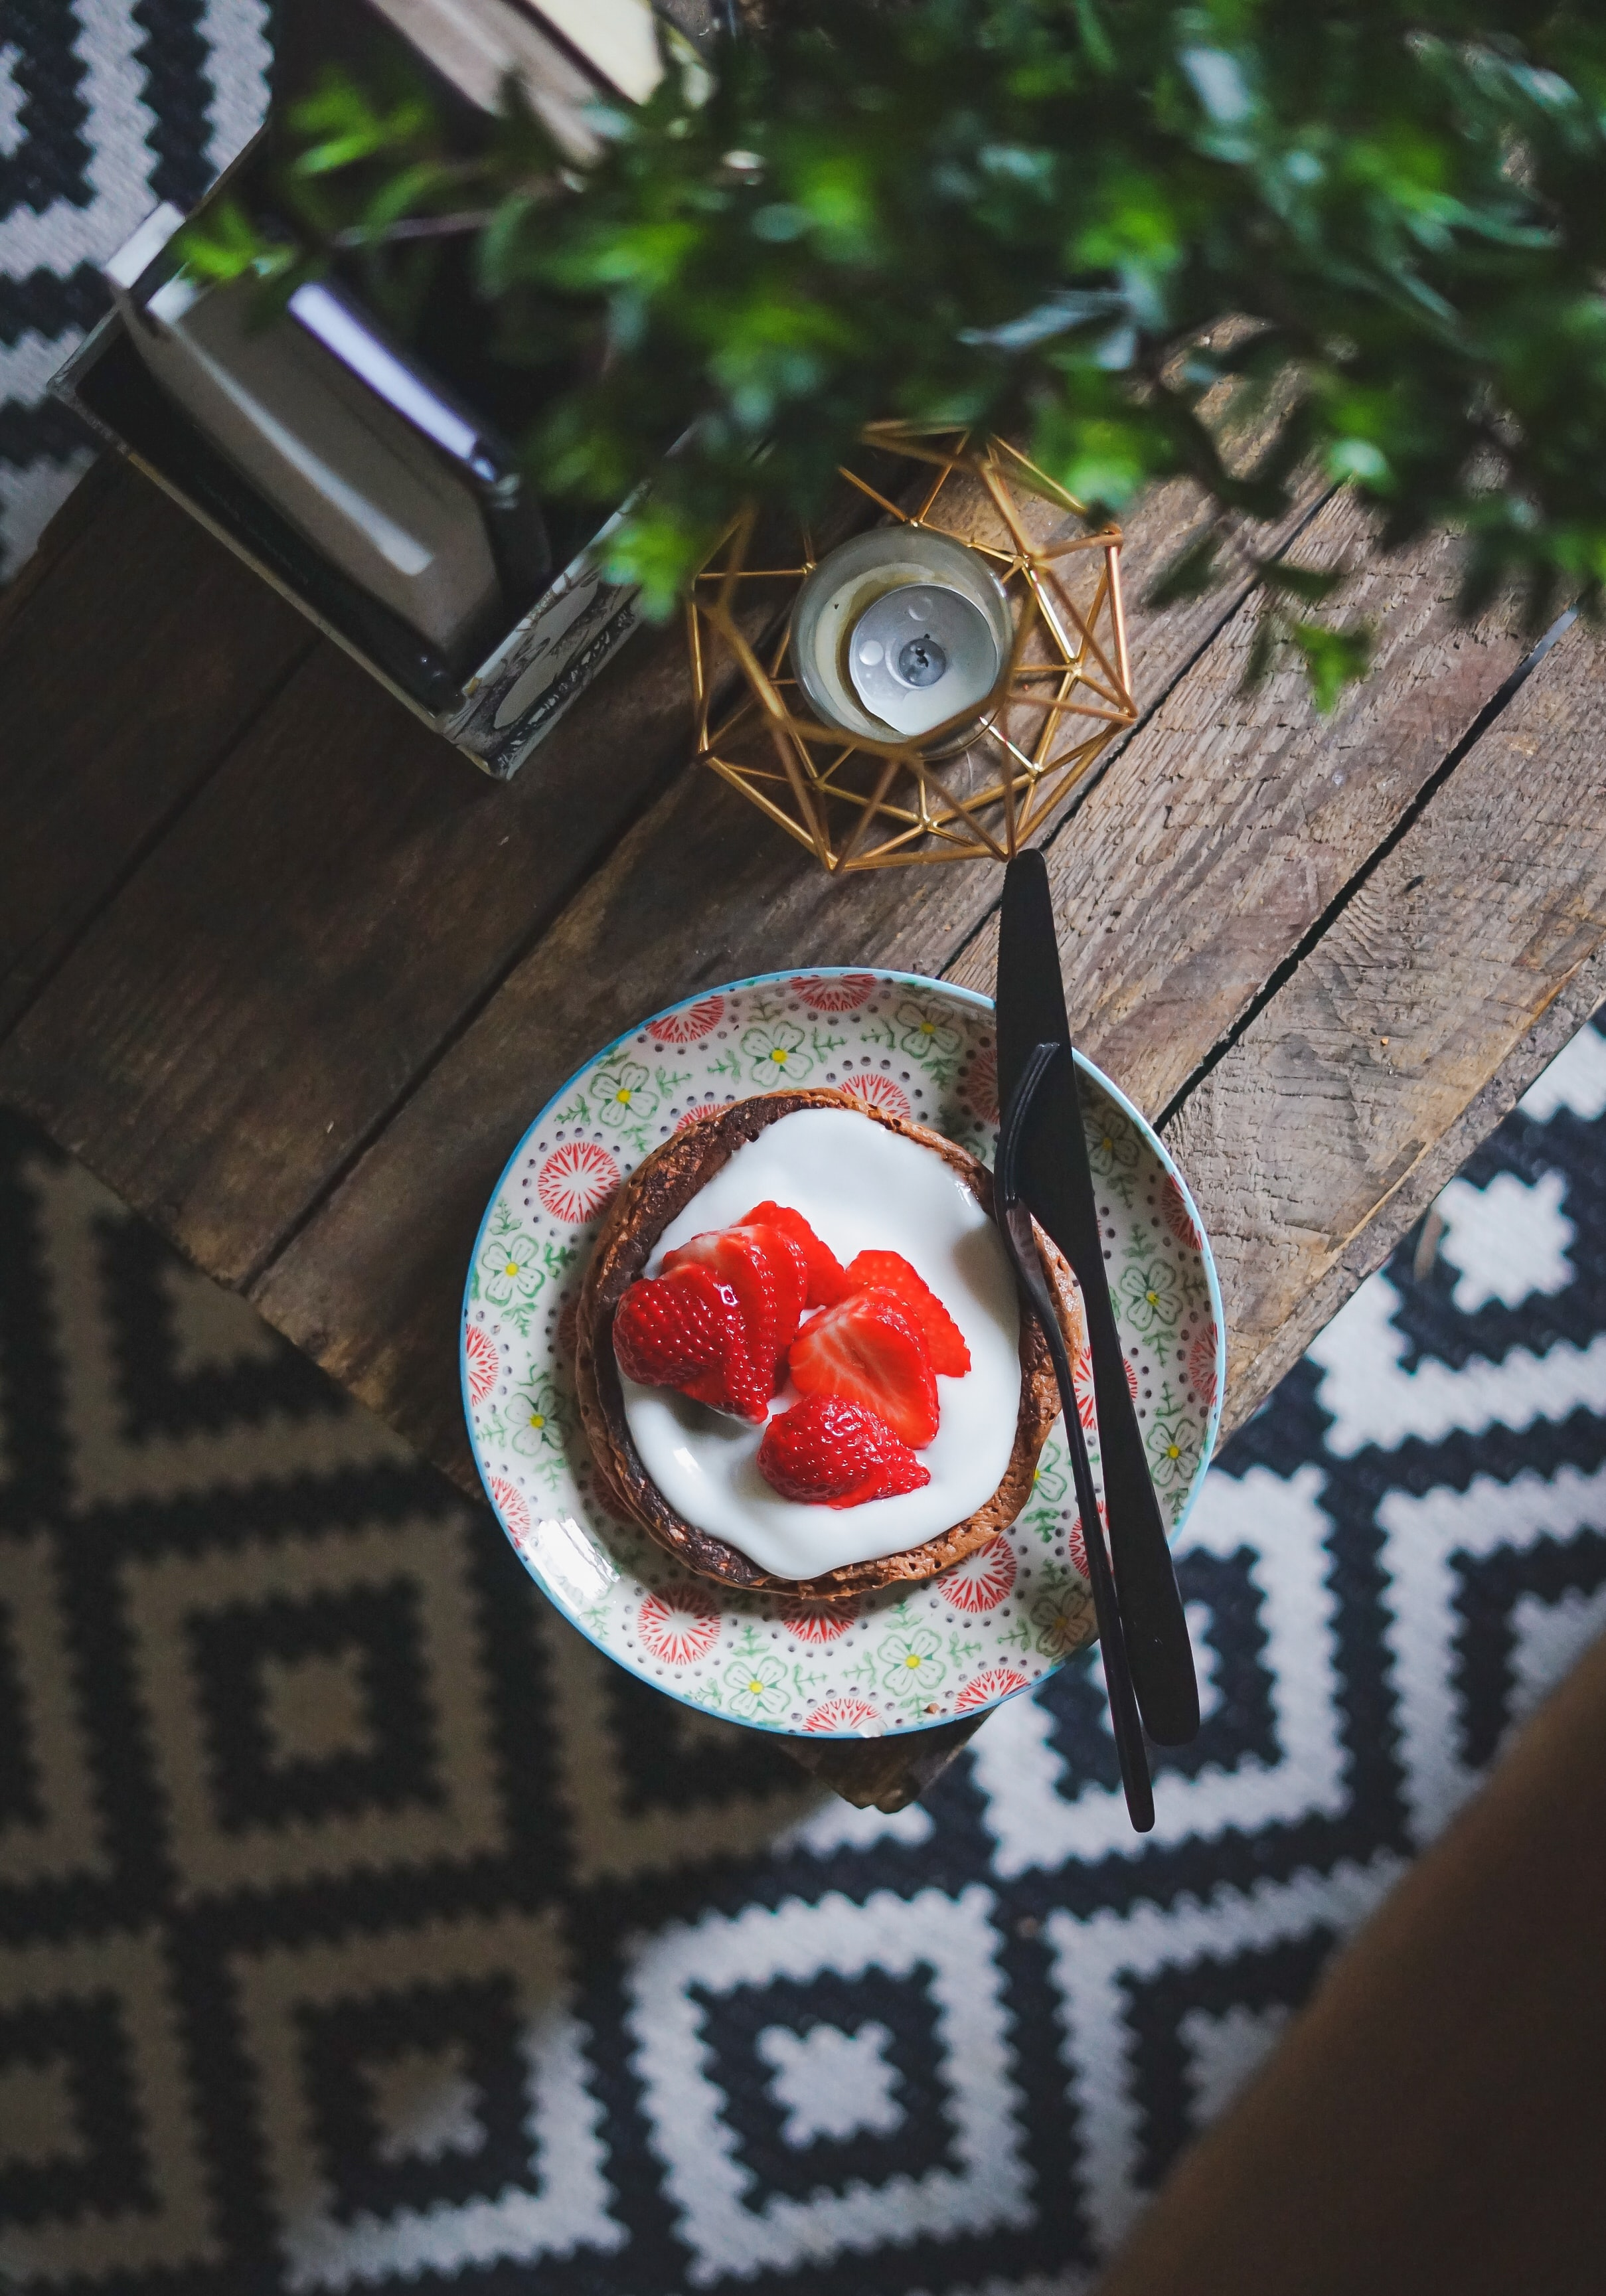 chocolate pancake with cream and strawberry beside fork and knife